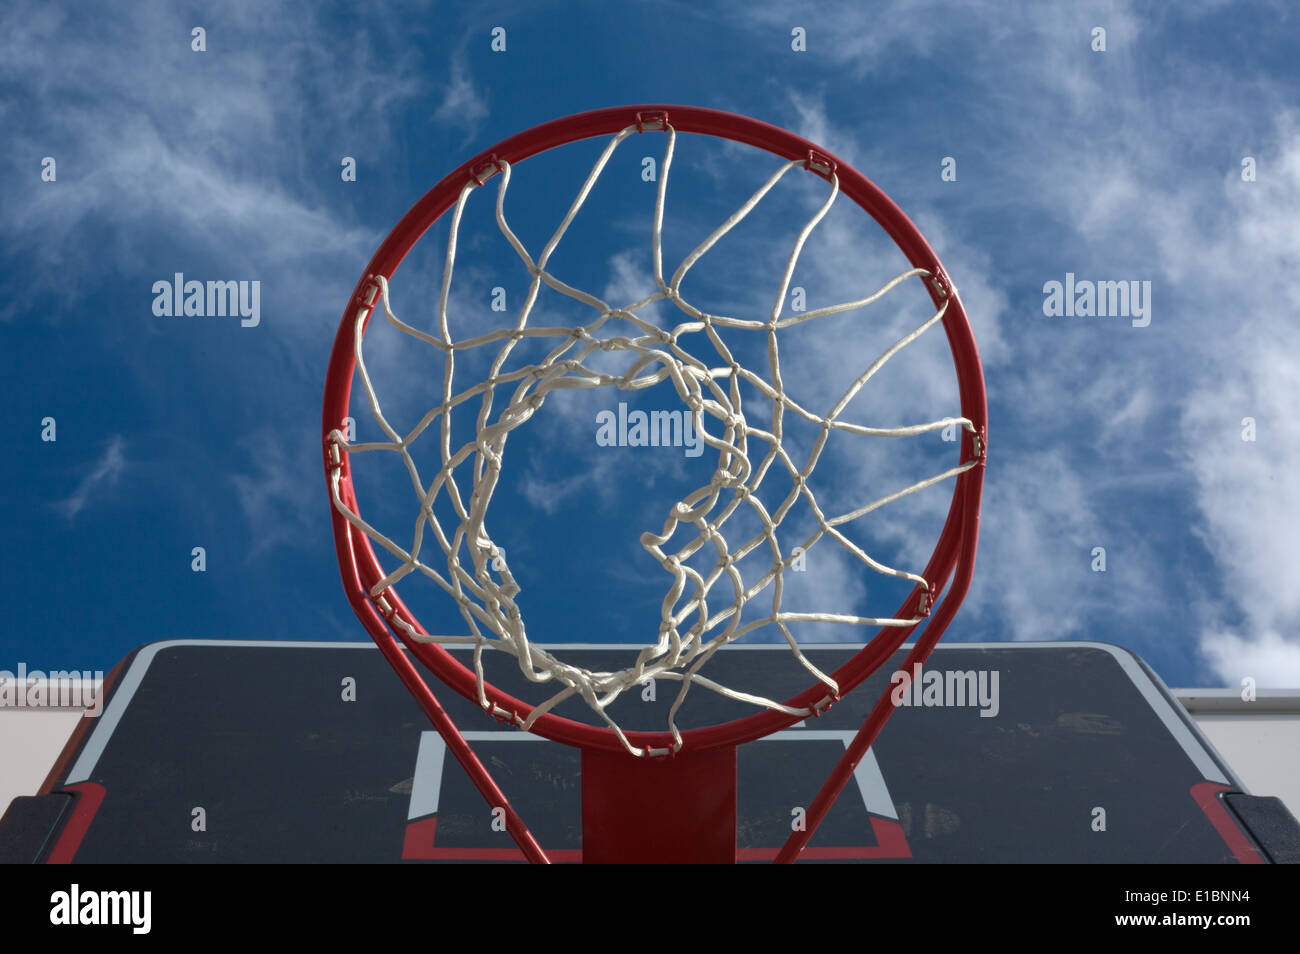 New basketball hoop from below against a cloudy sky Stock Photo